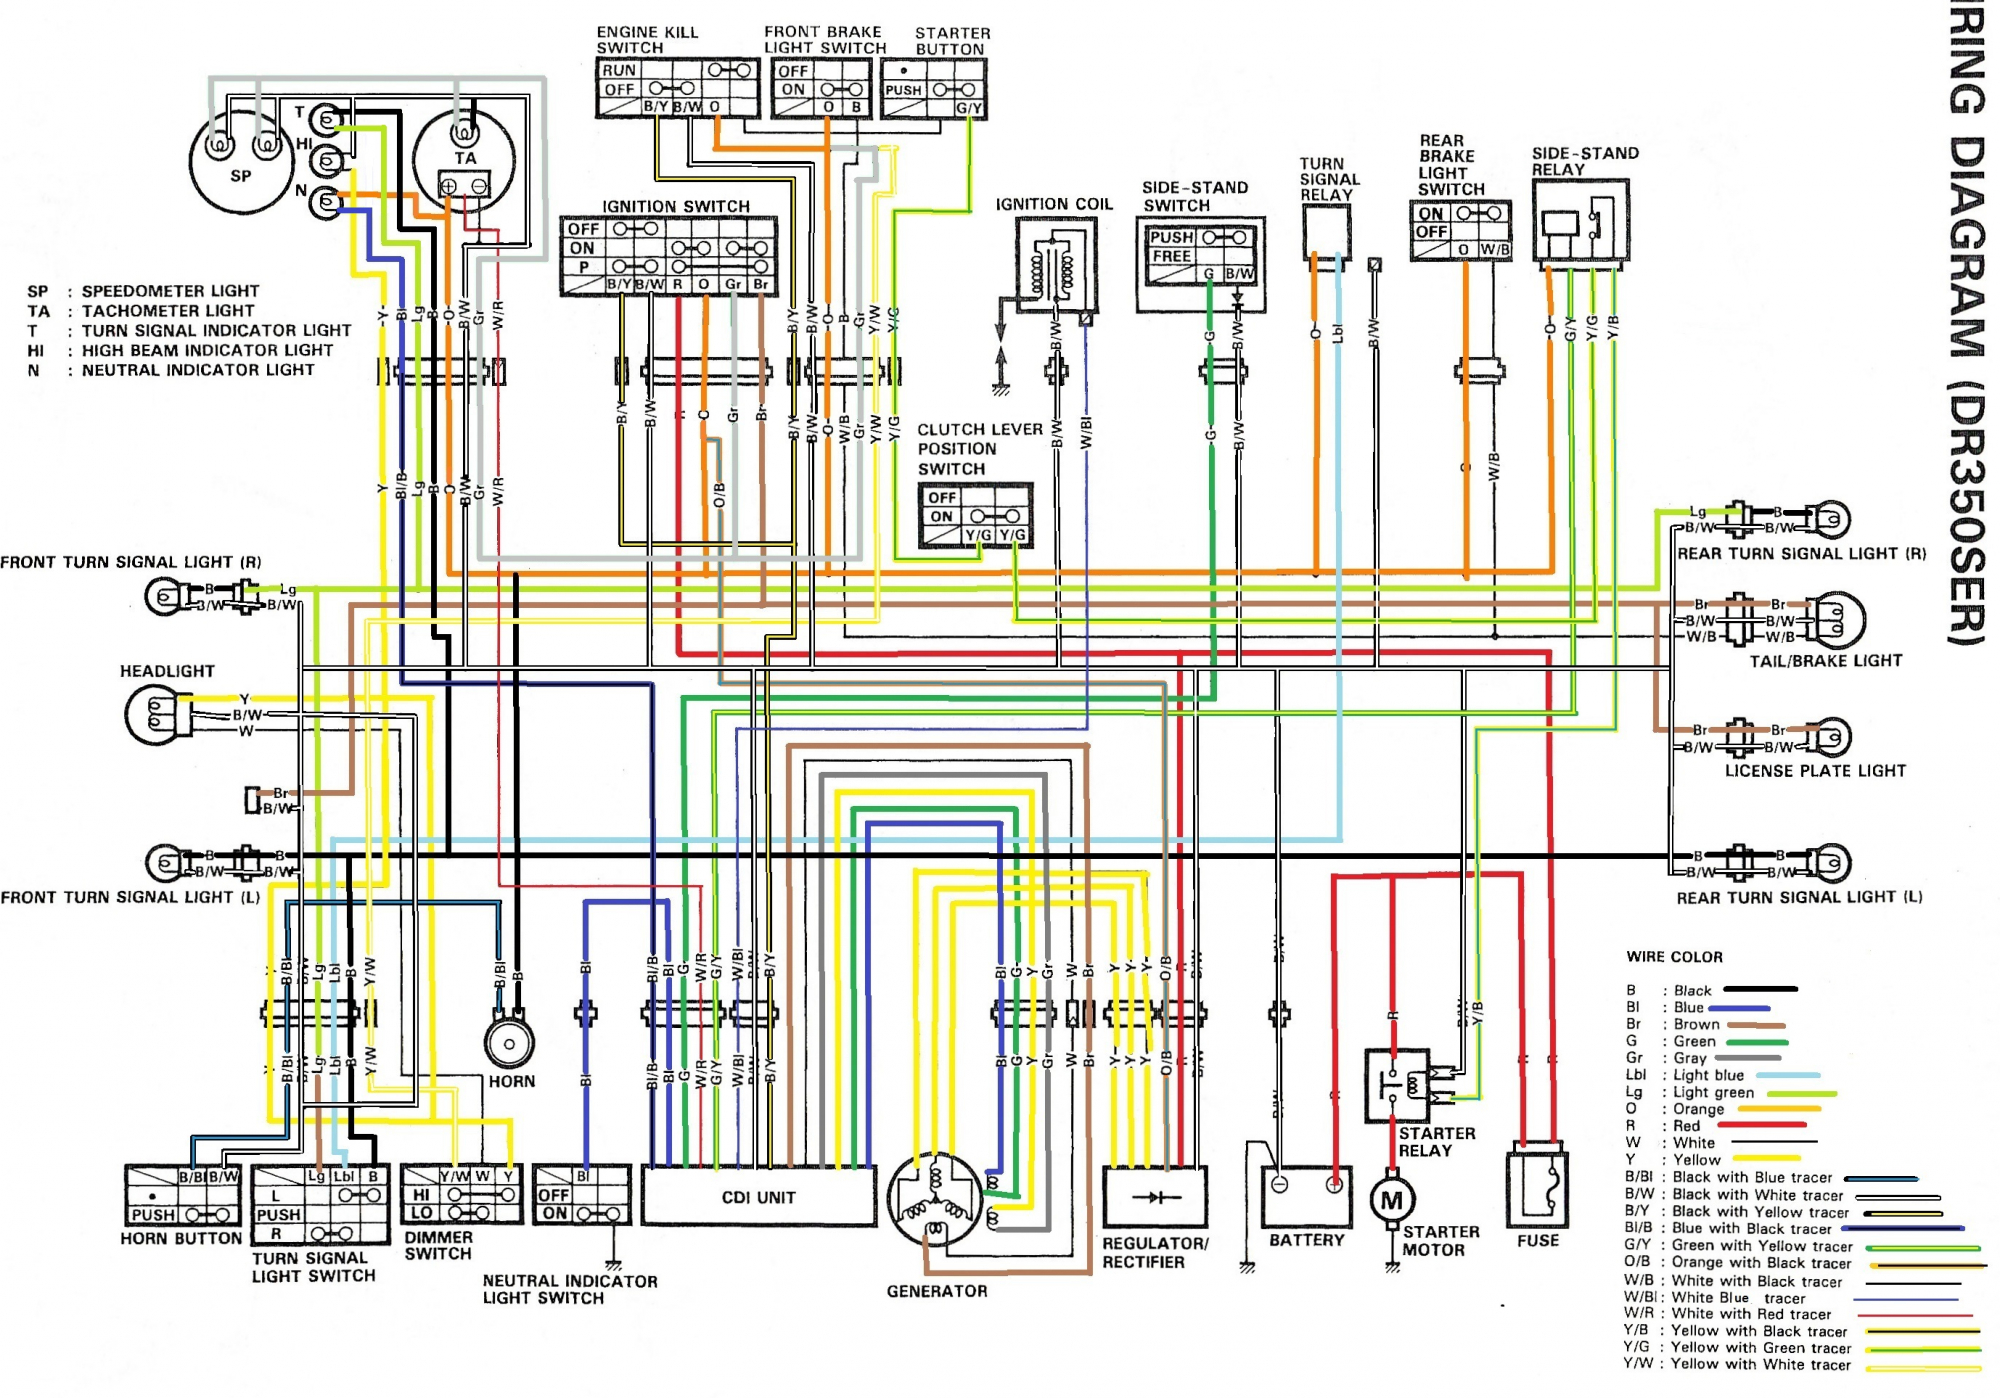 Wiring Diagram For The Dr350 Se (1994 And Later Models) - Color - Wiring Diagram For A